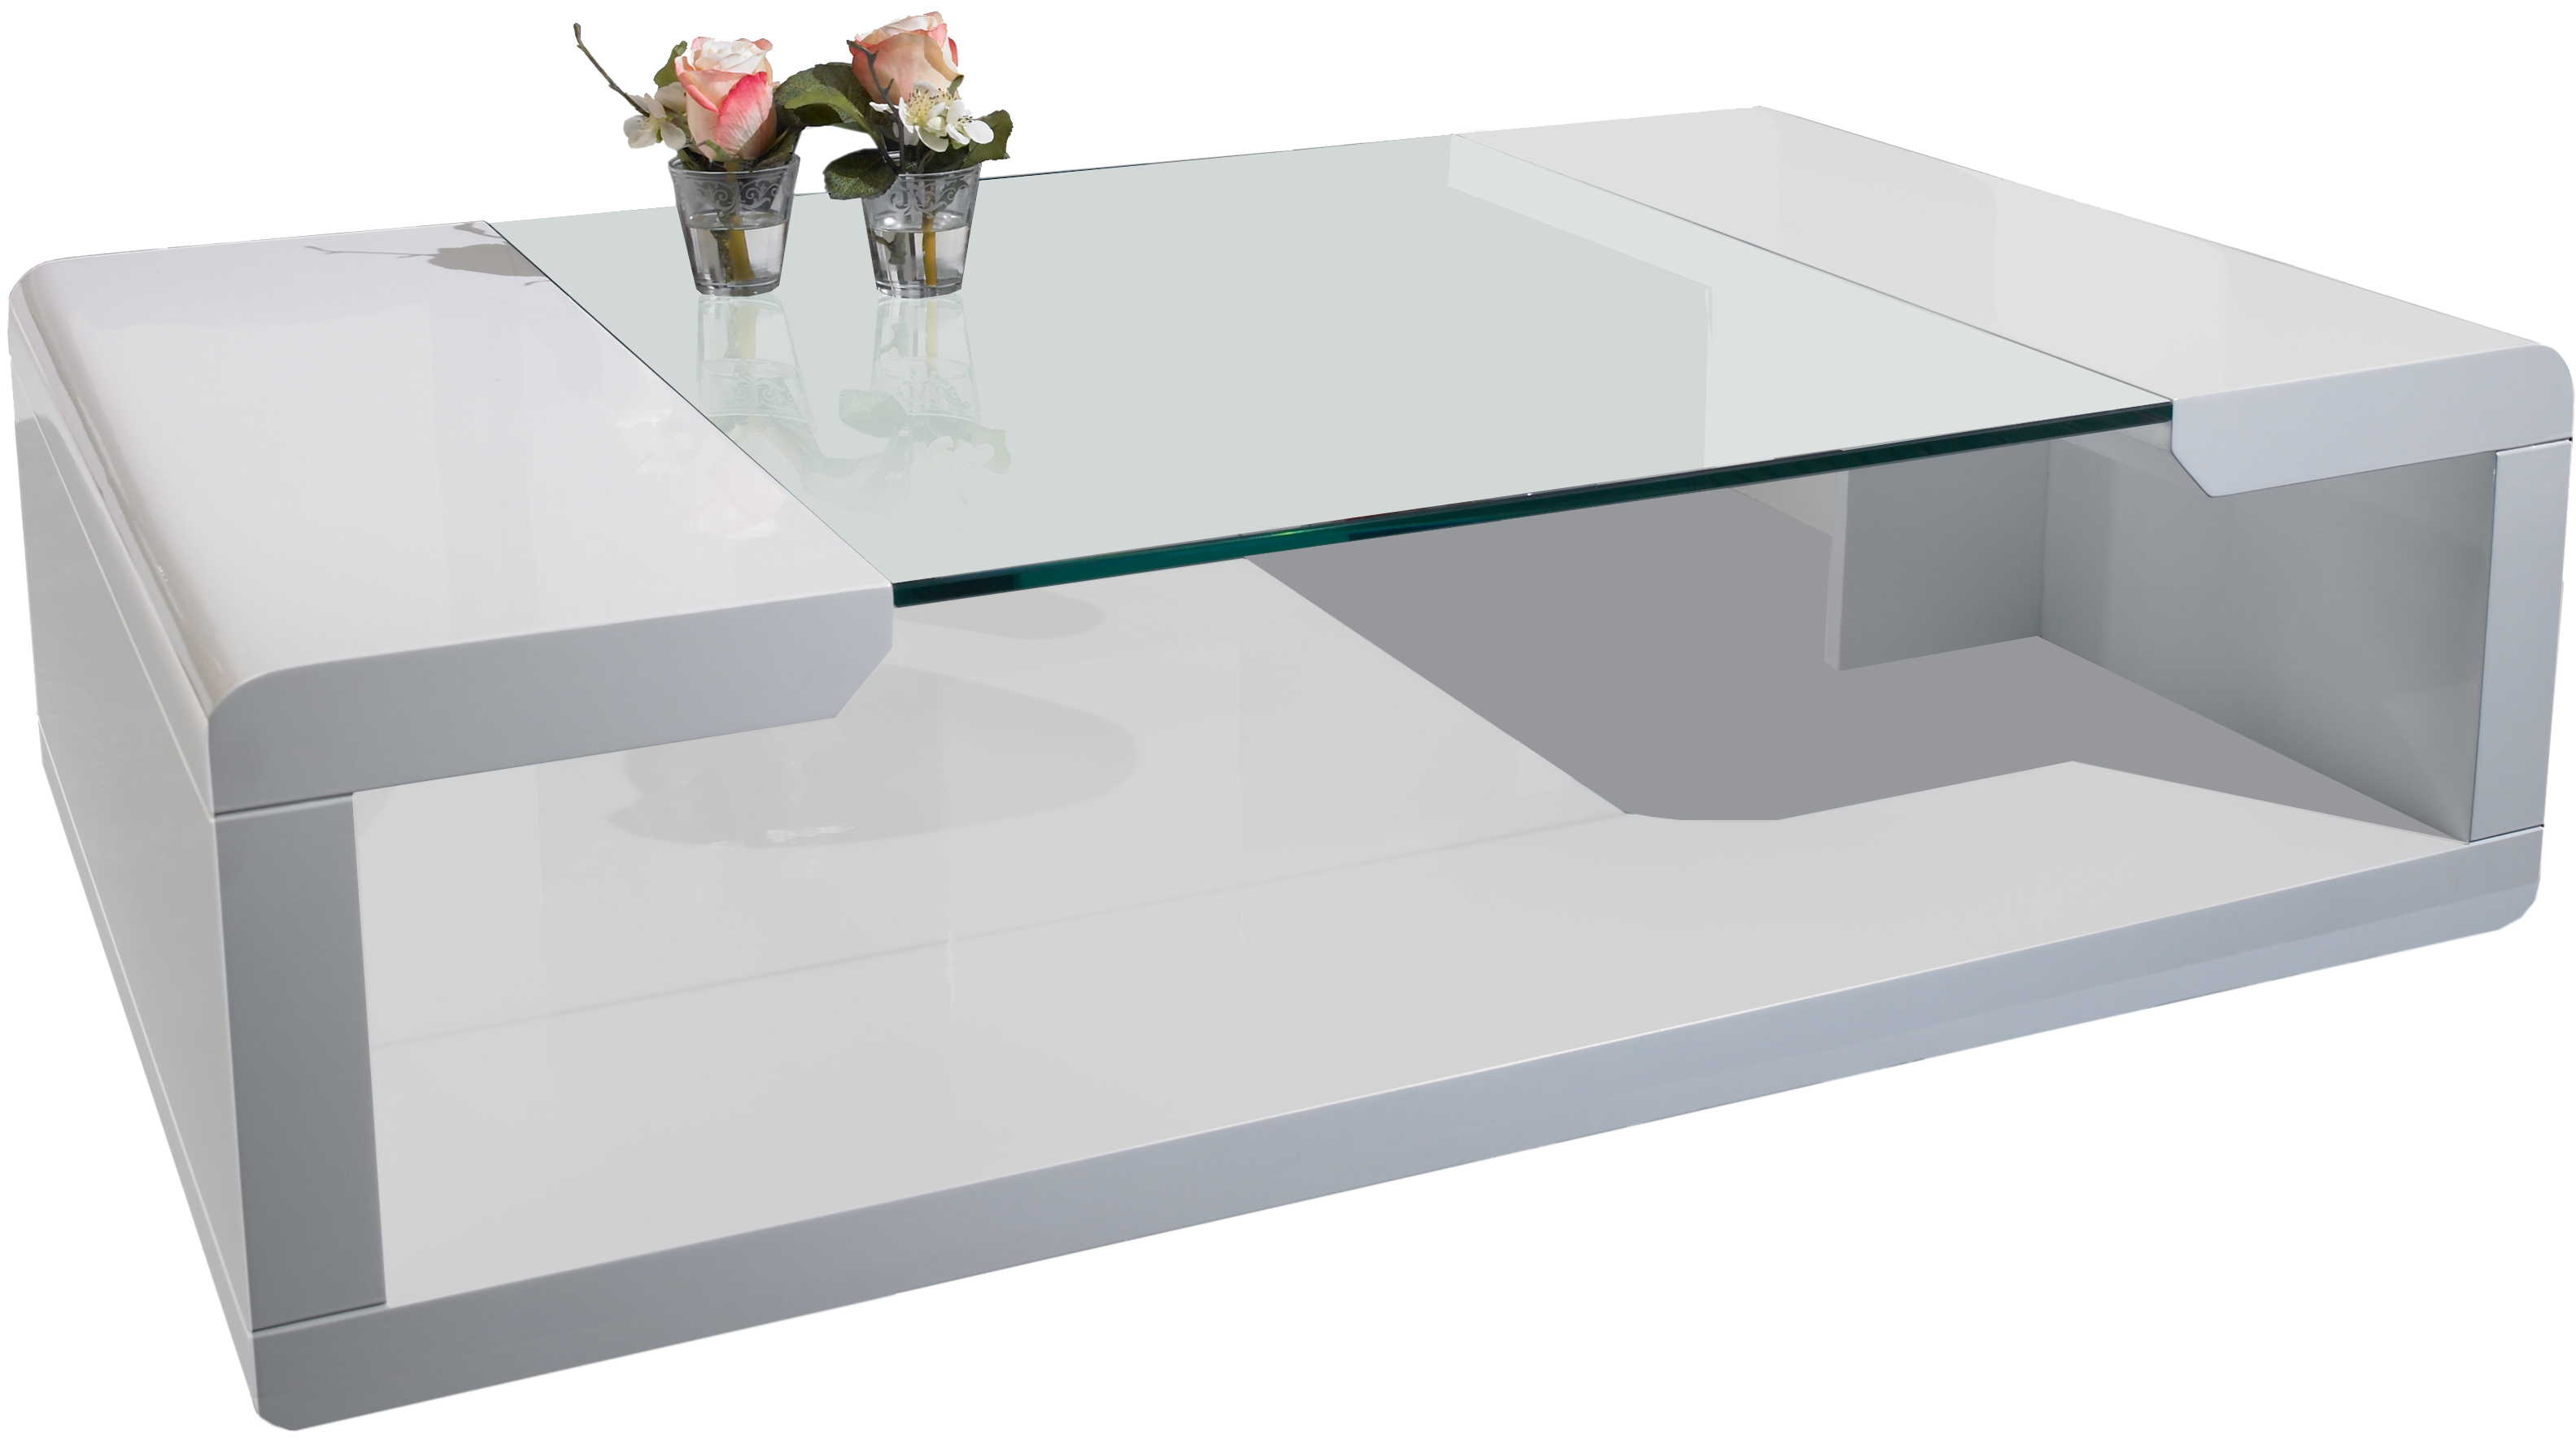 Table basse blanc divoire - Table basse blanc verre ...